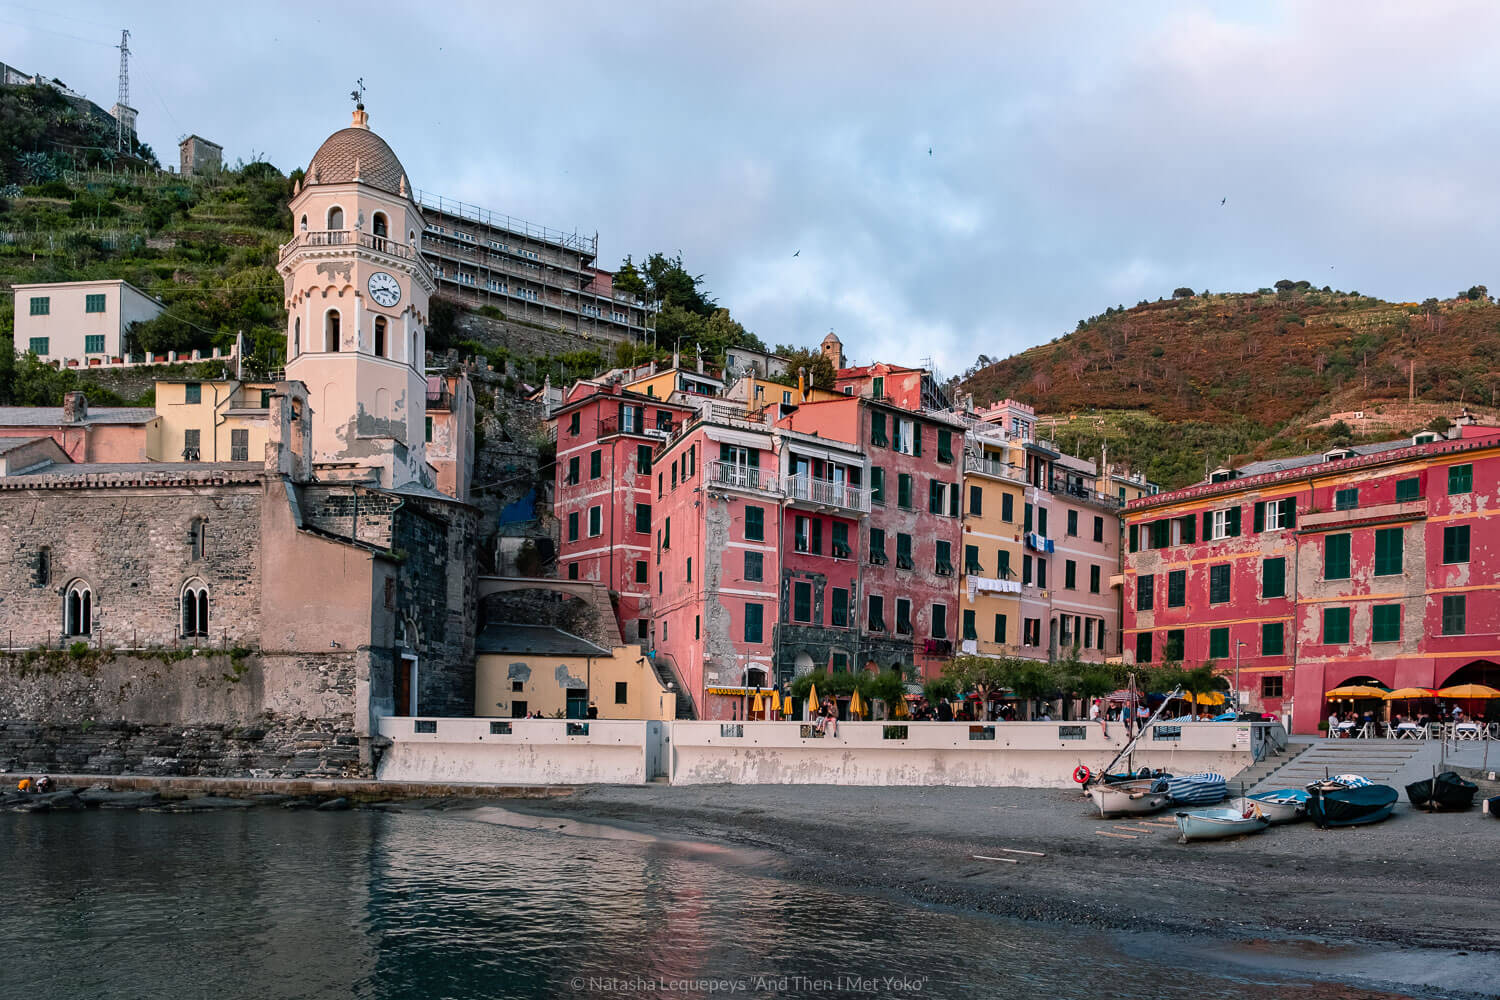 """Sunset in Vernazza, Cinque Terre. Travel photography and guide by © Natasha Lequepeys for """"And Then I Met Yoko"""". #cinqueterre #italy #travelphotography"""